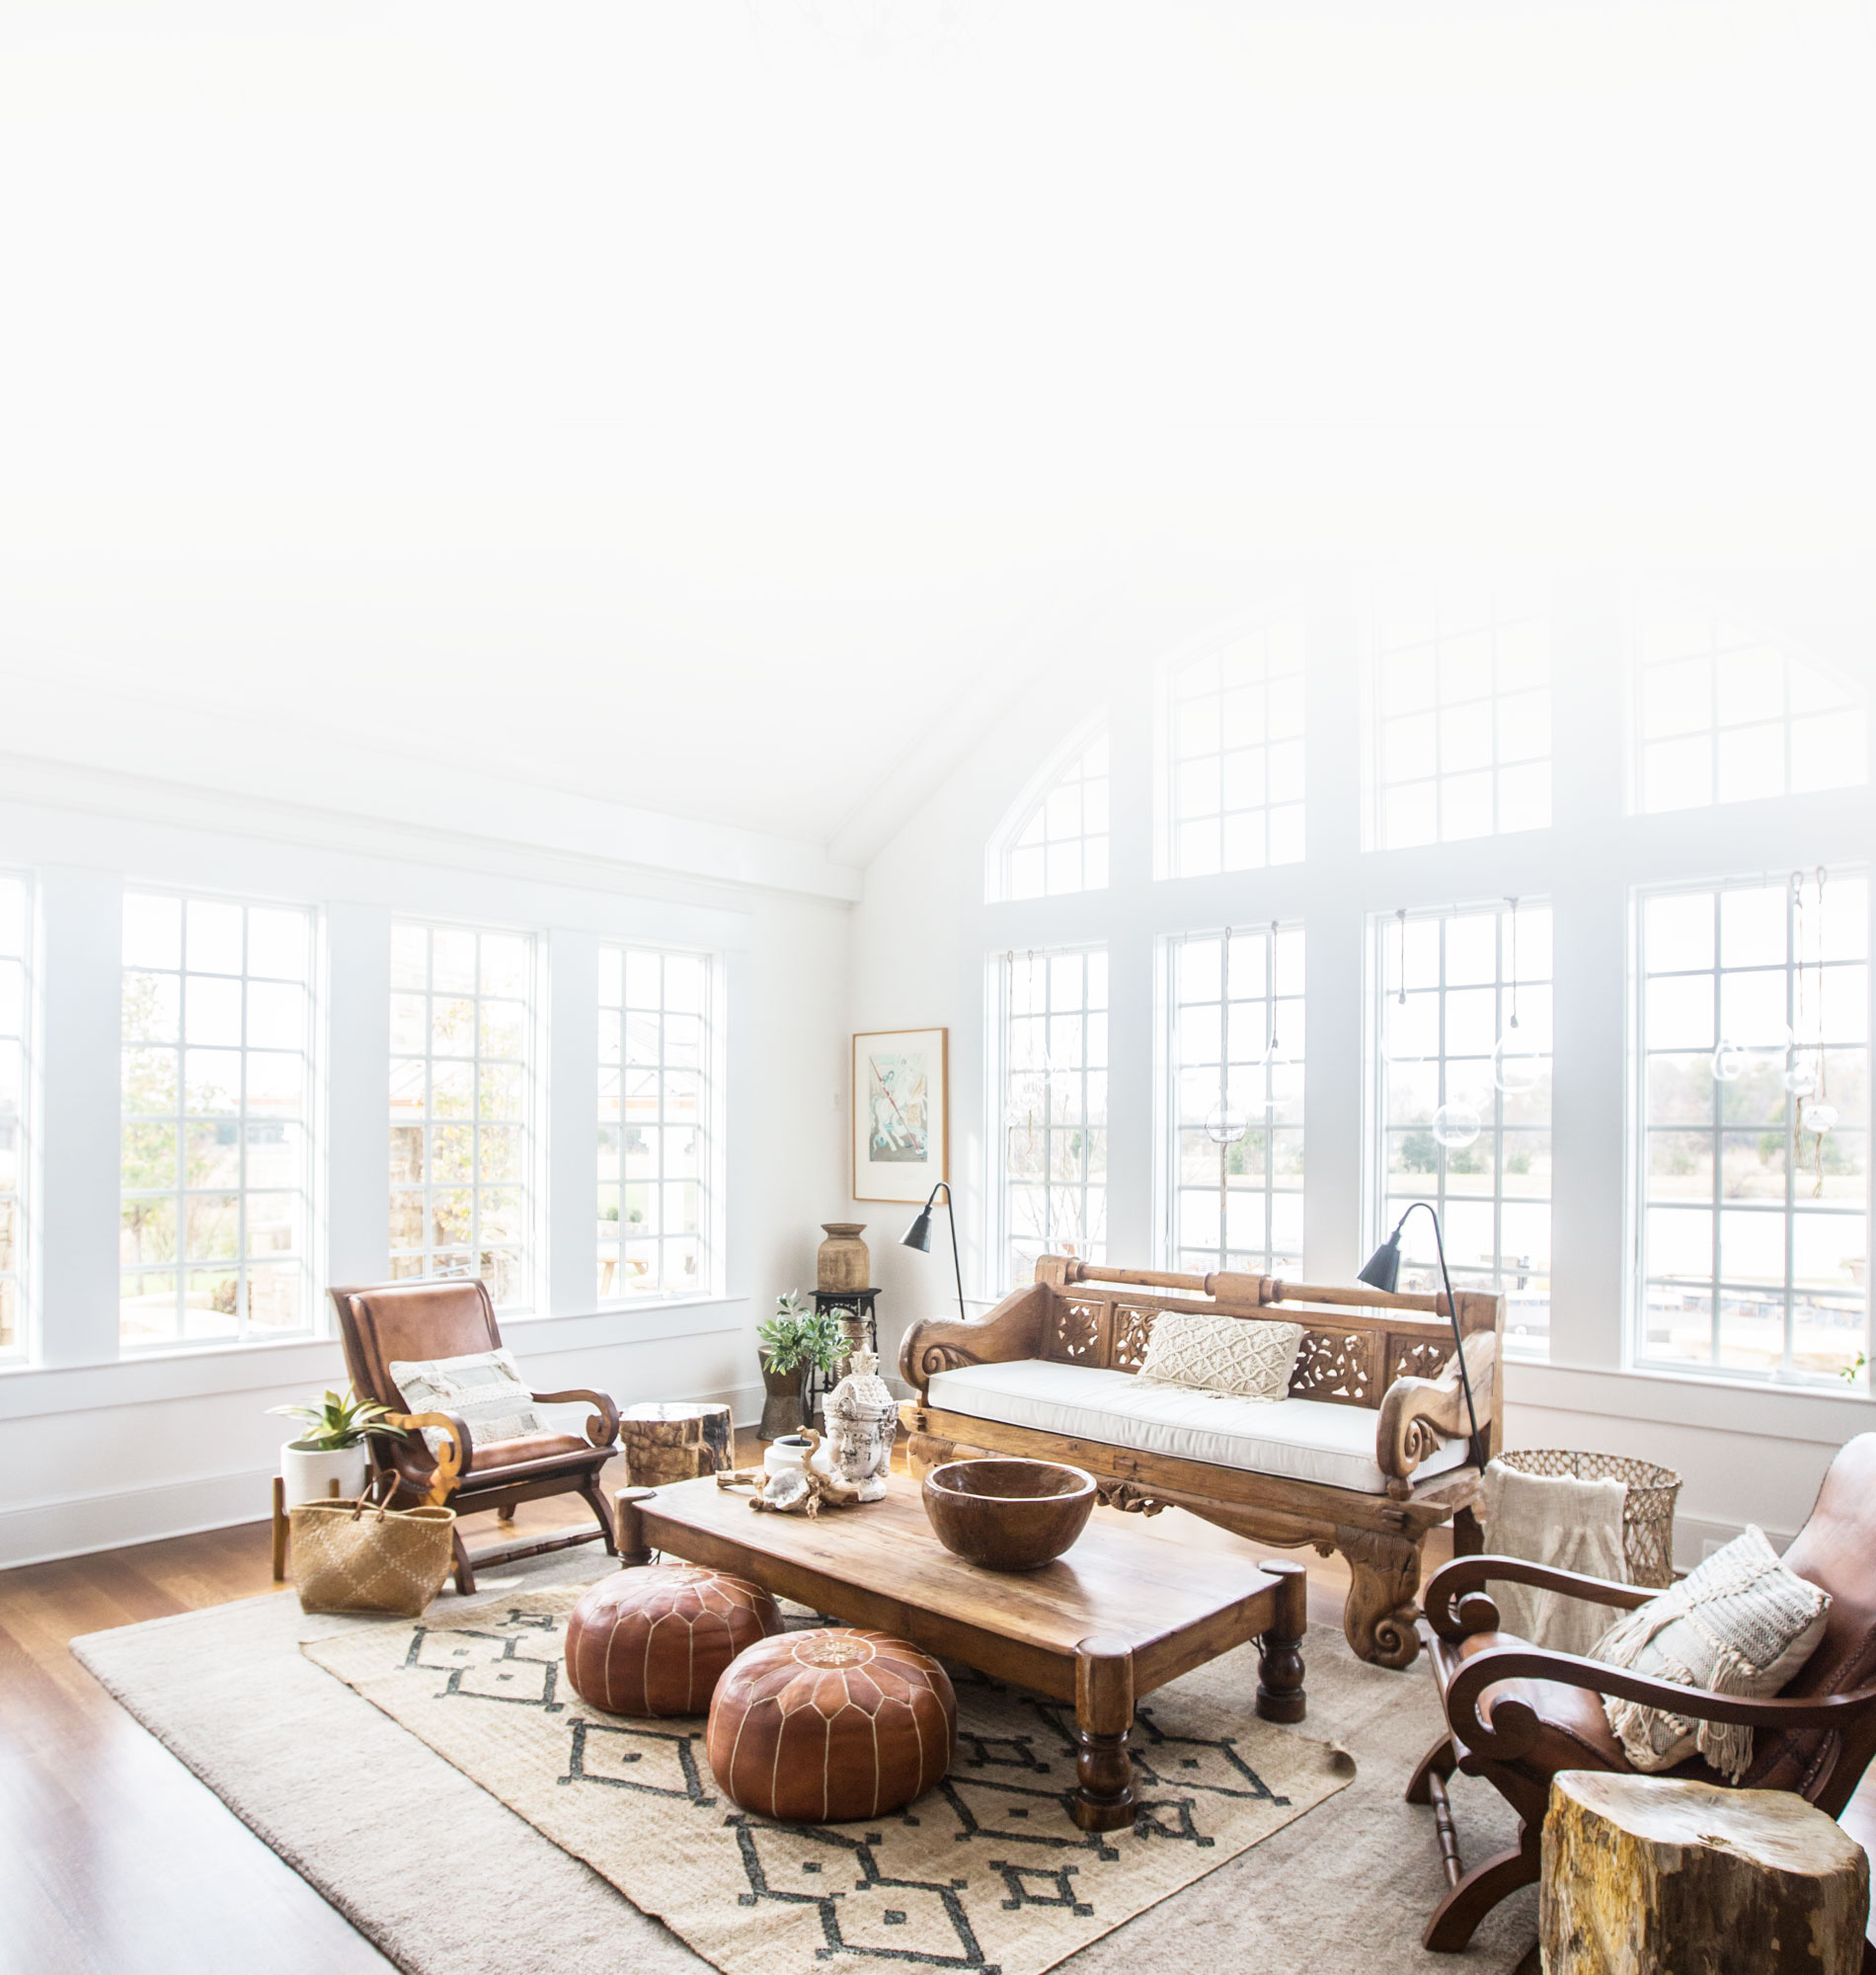 Commercial Photography & Videography, stretch livingroom image for mobile background